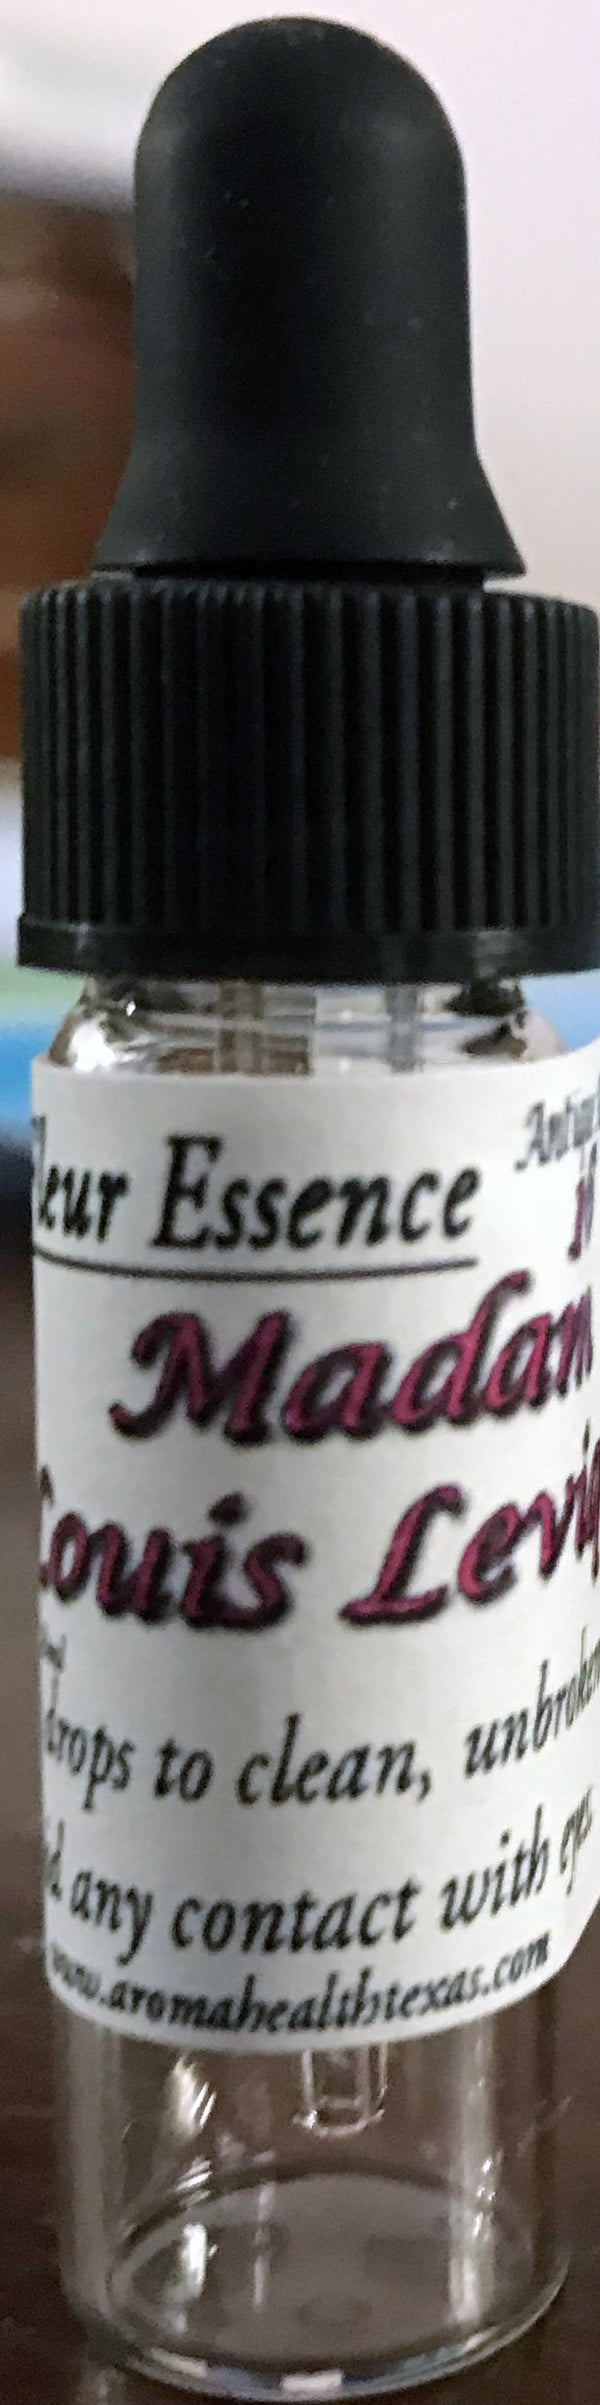 Madame Louis Levique Antiqe Rose Essence, Rosa centifolia mucosa